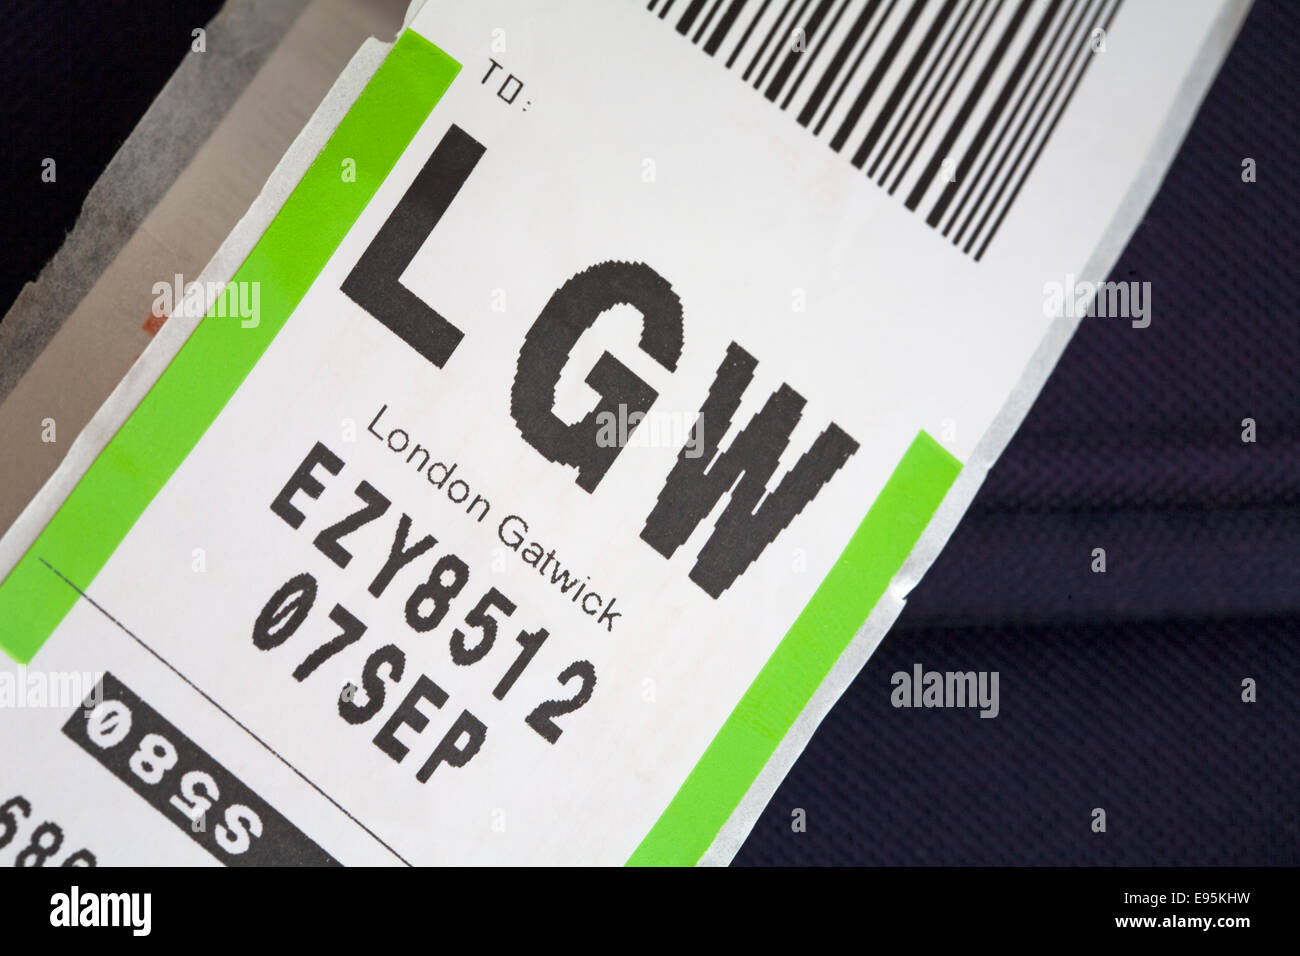 luggage label stuck on bag for LGW London Gatwick airport - Stock Image